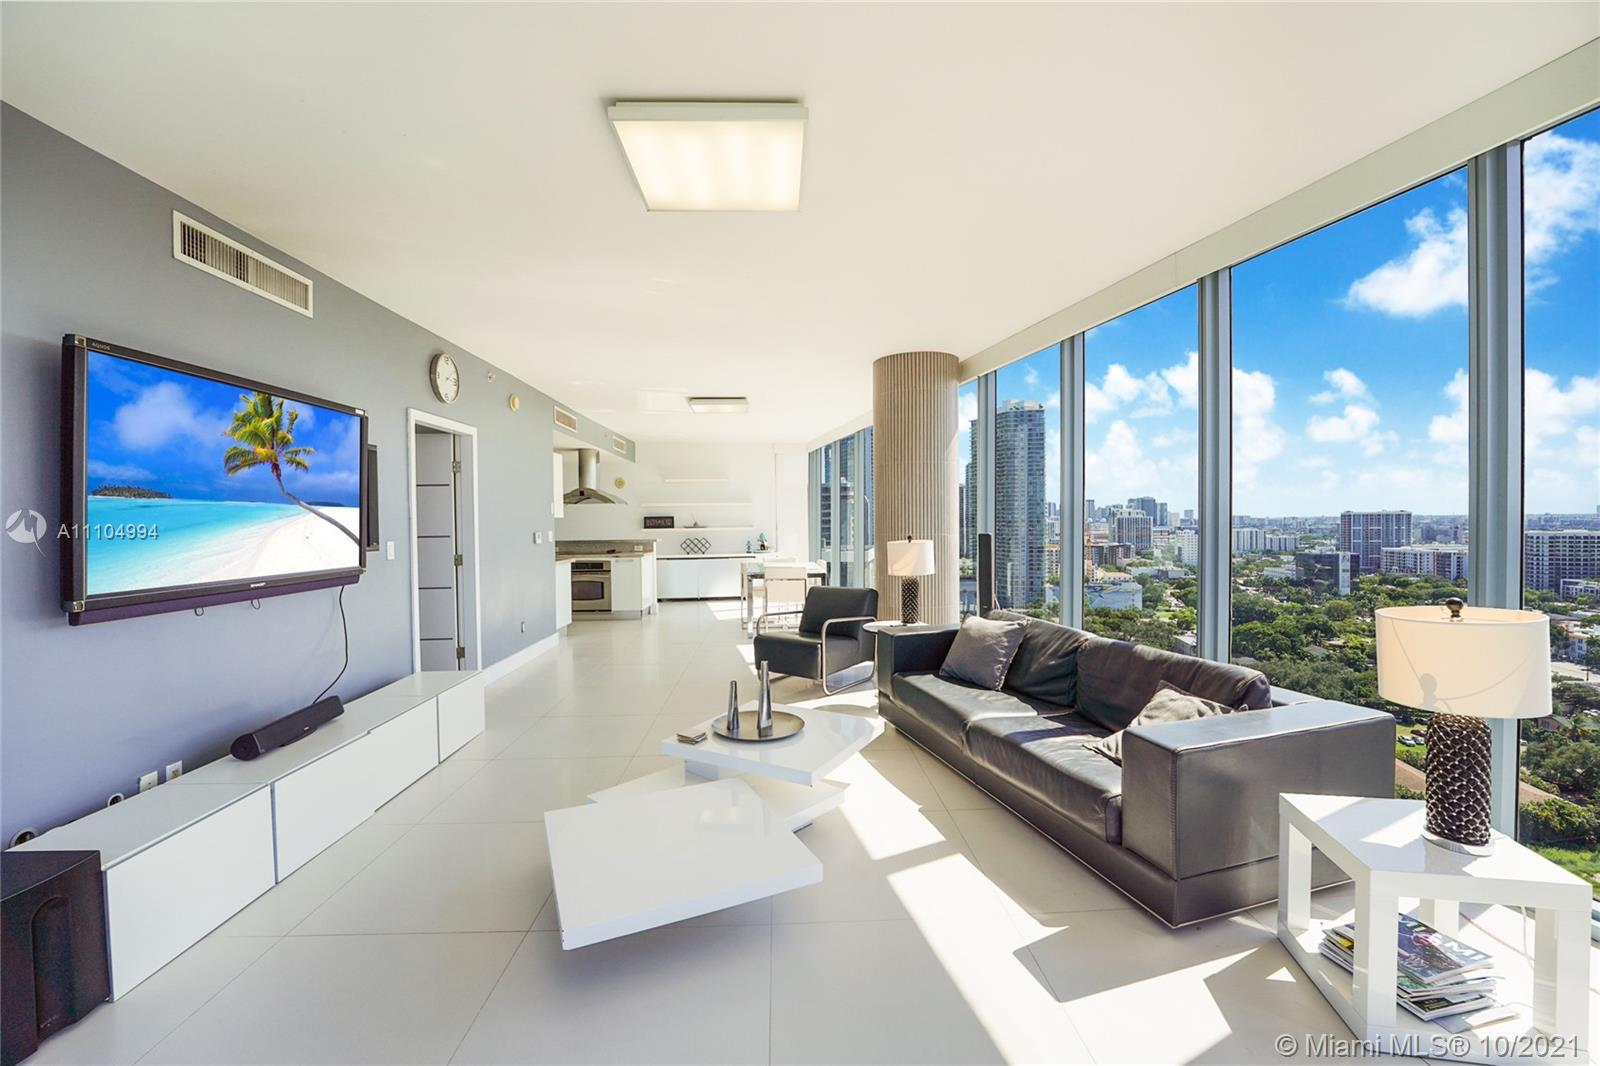 Very nice and well illuminated corner unit with City & Ocean views at Blue Condo in Miami; These 2 B